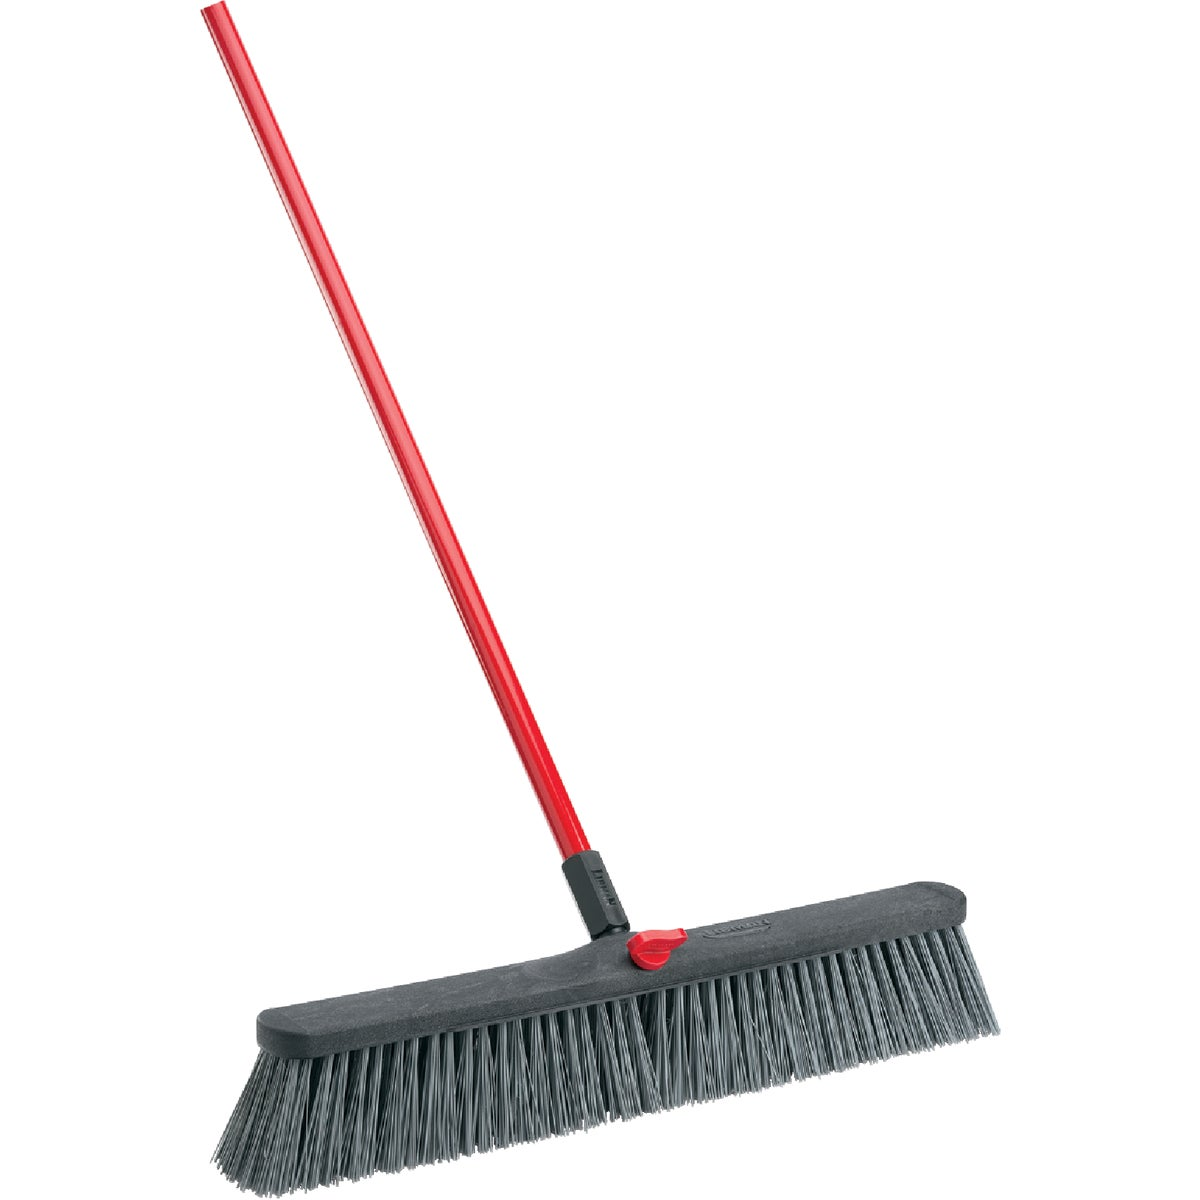 "24"" ROUGH PUSH BROOM - 124958 by F H P-lp"